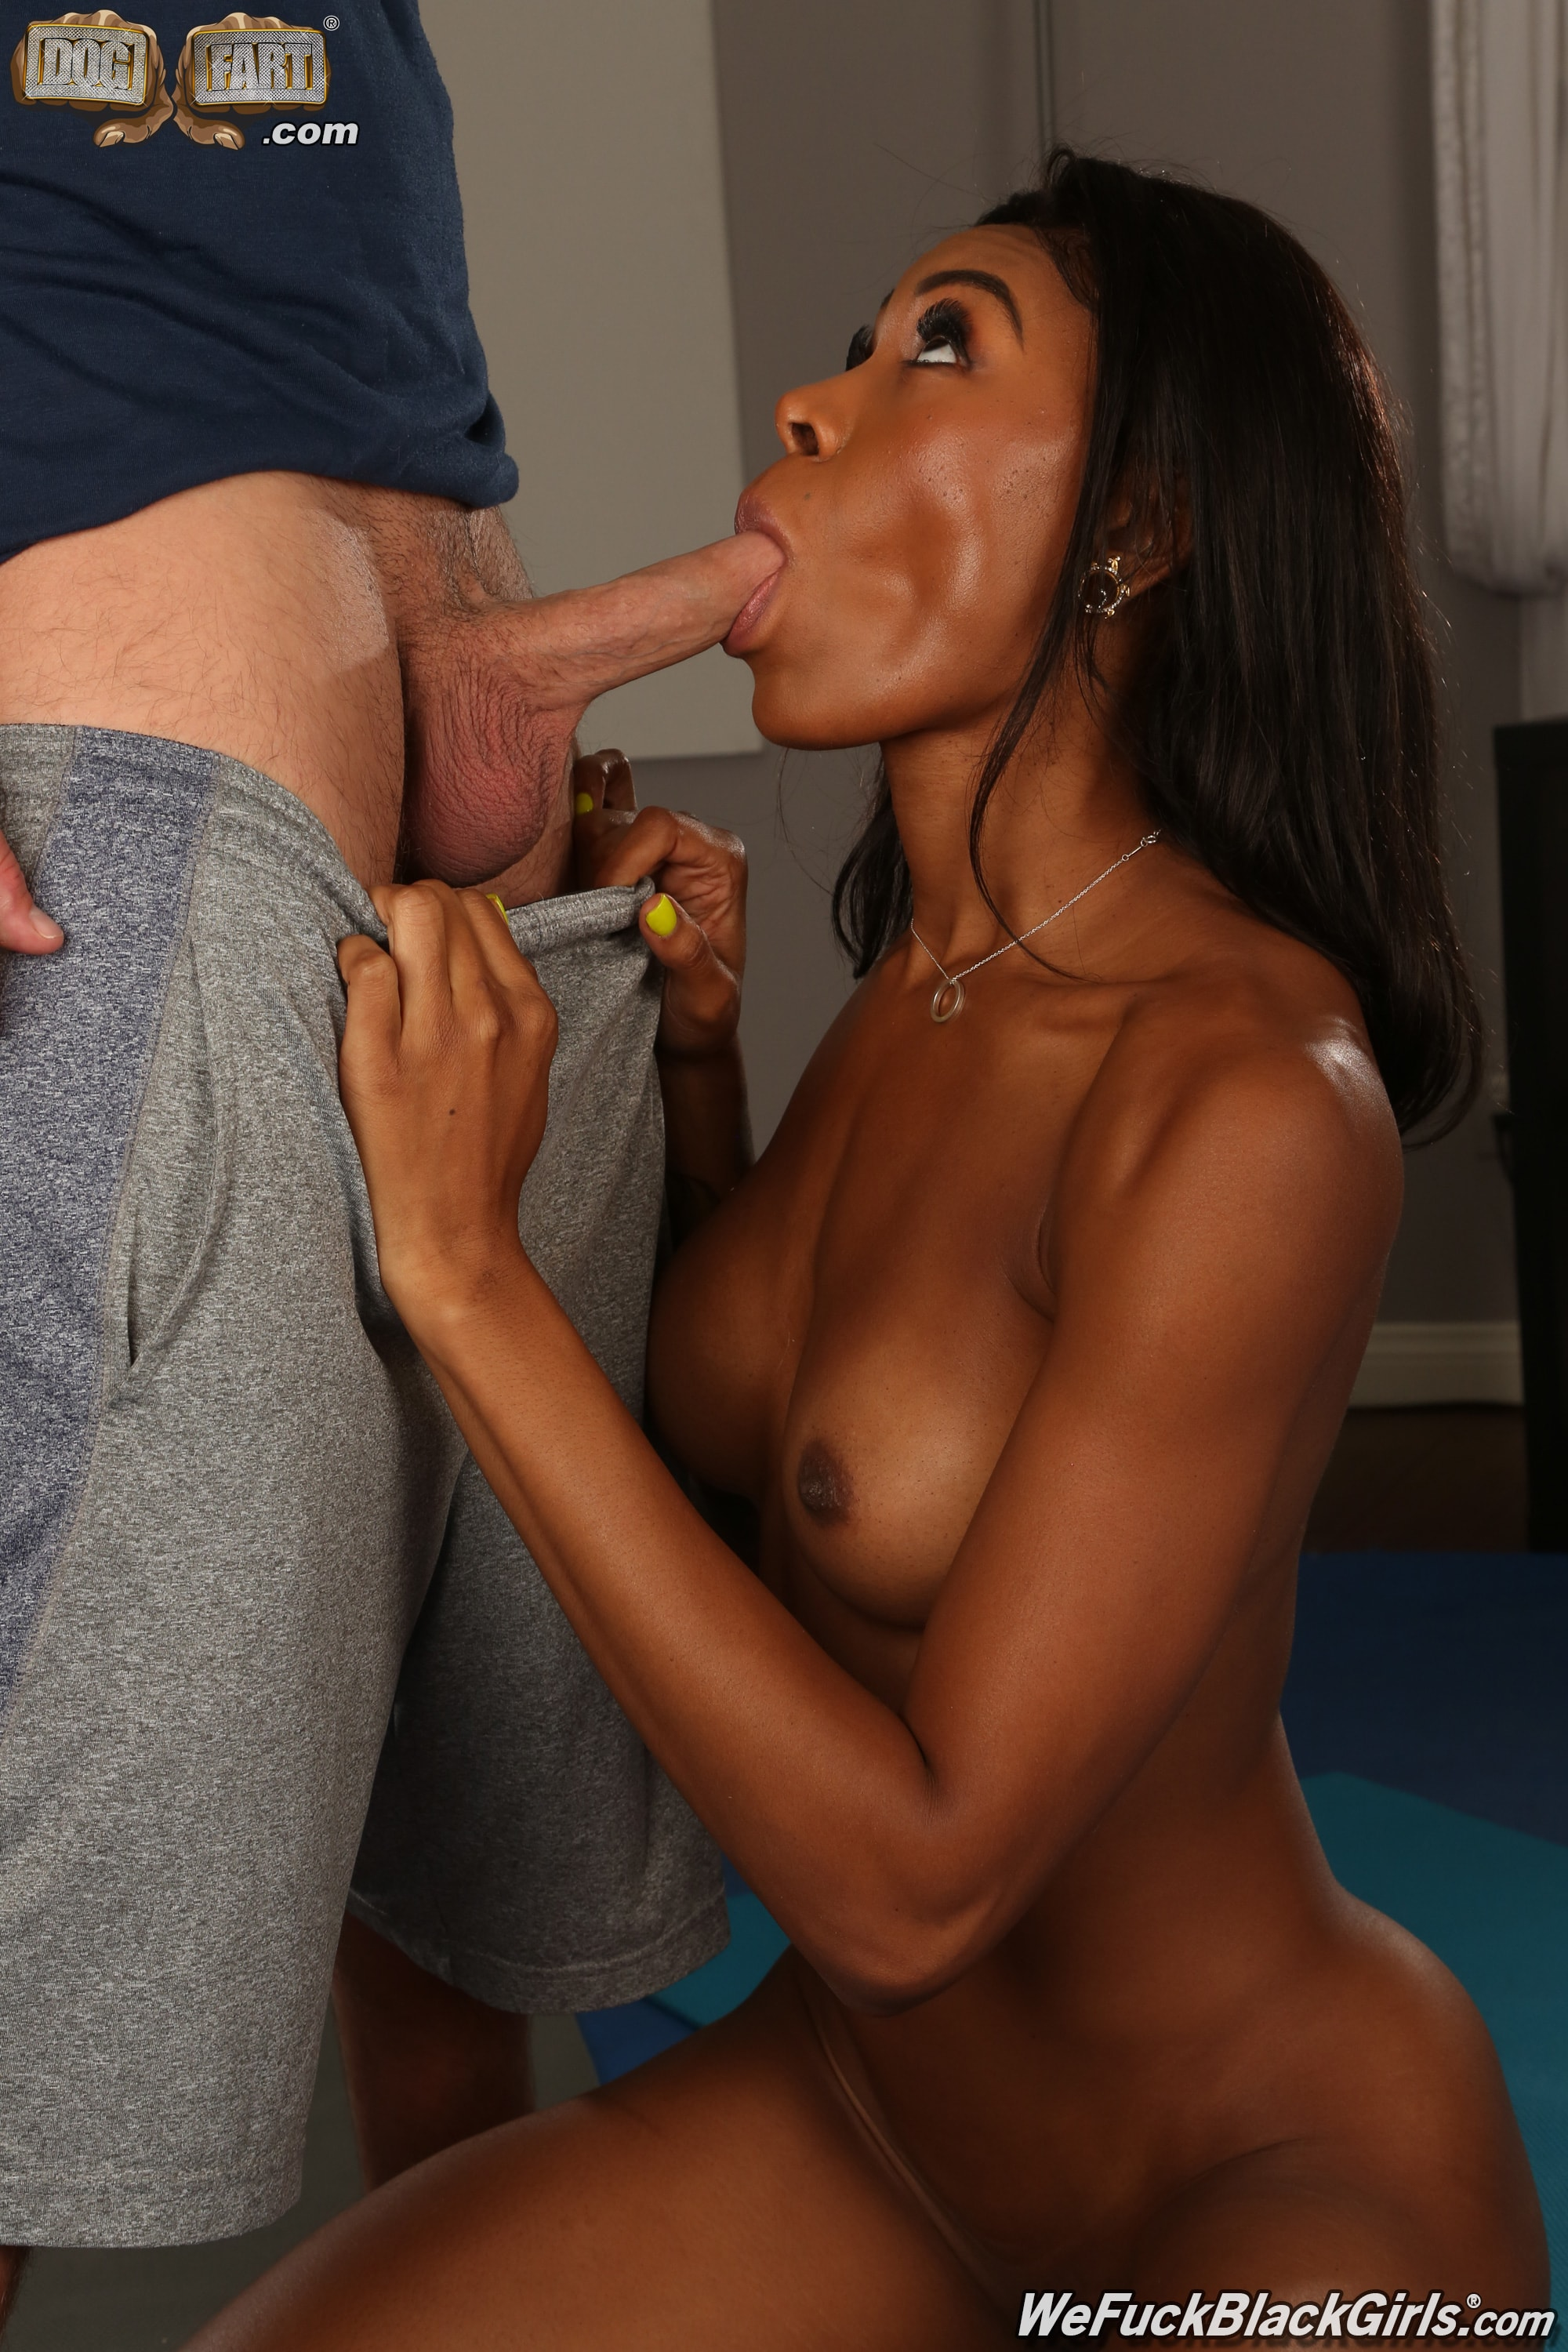 Dogfart '- We Fuck Black Girls - Scene 3' starring Nadia Jay (Photo 8)